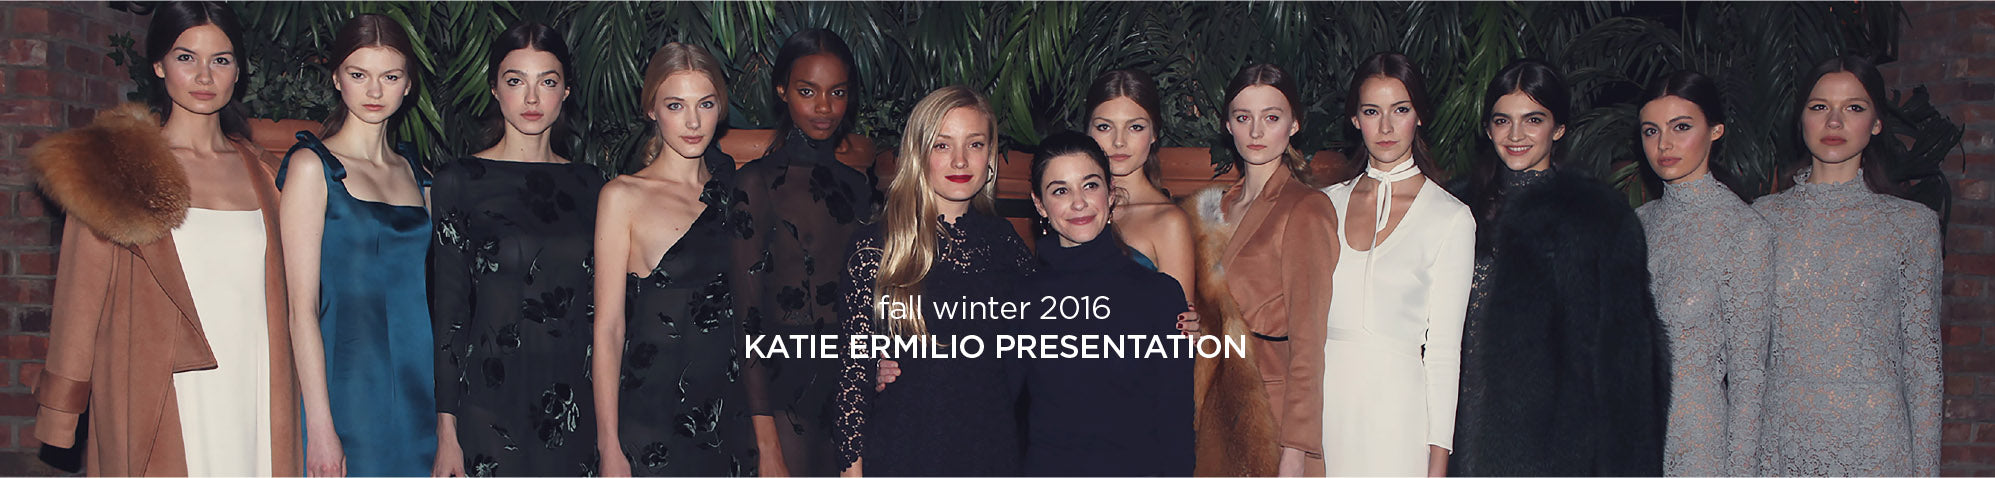 Fall Winter 2016 - Kate Ermilio Presentation